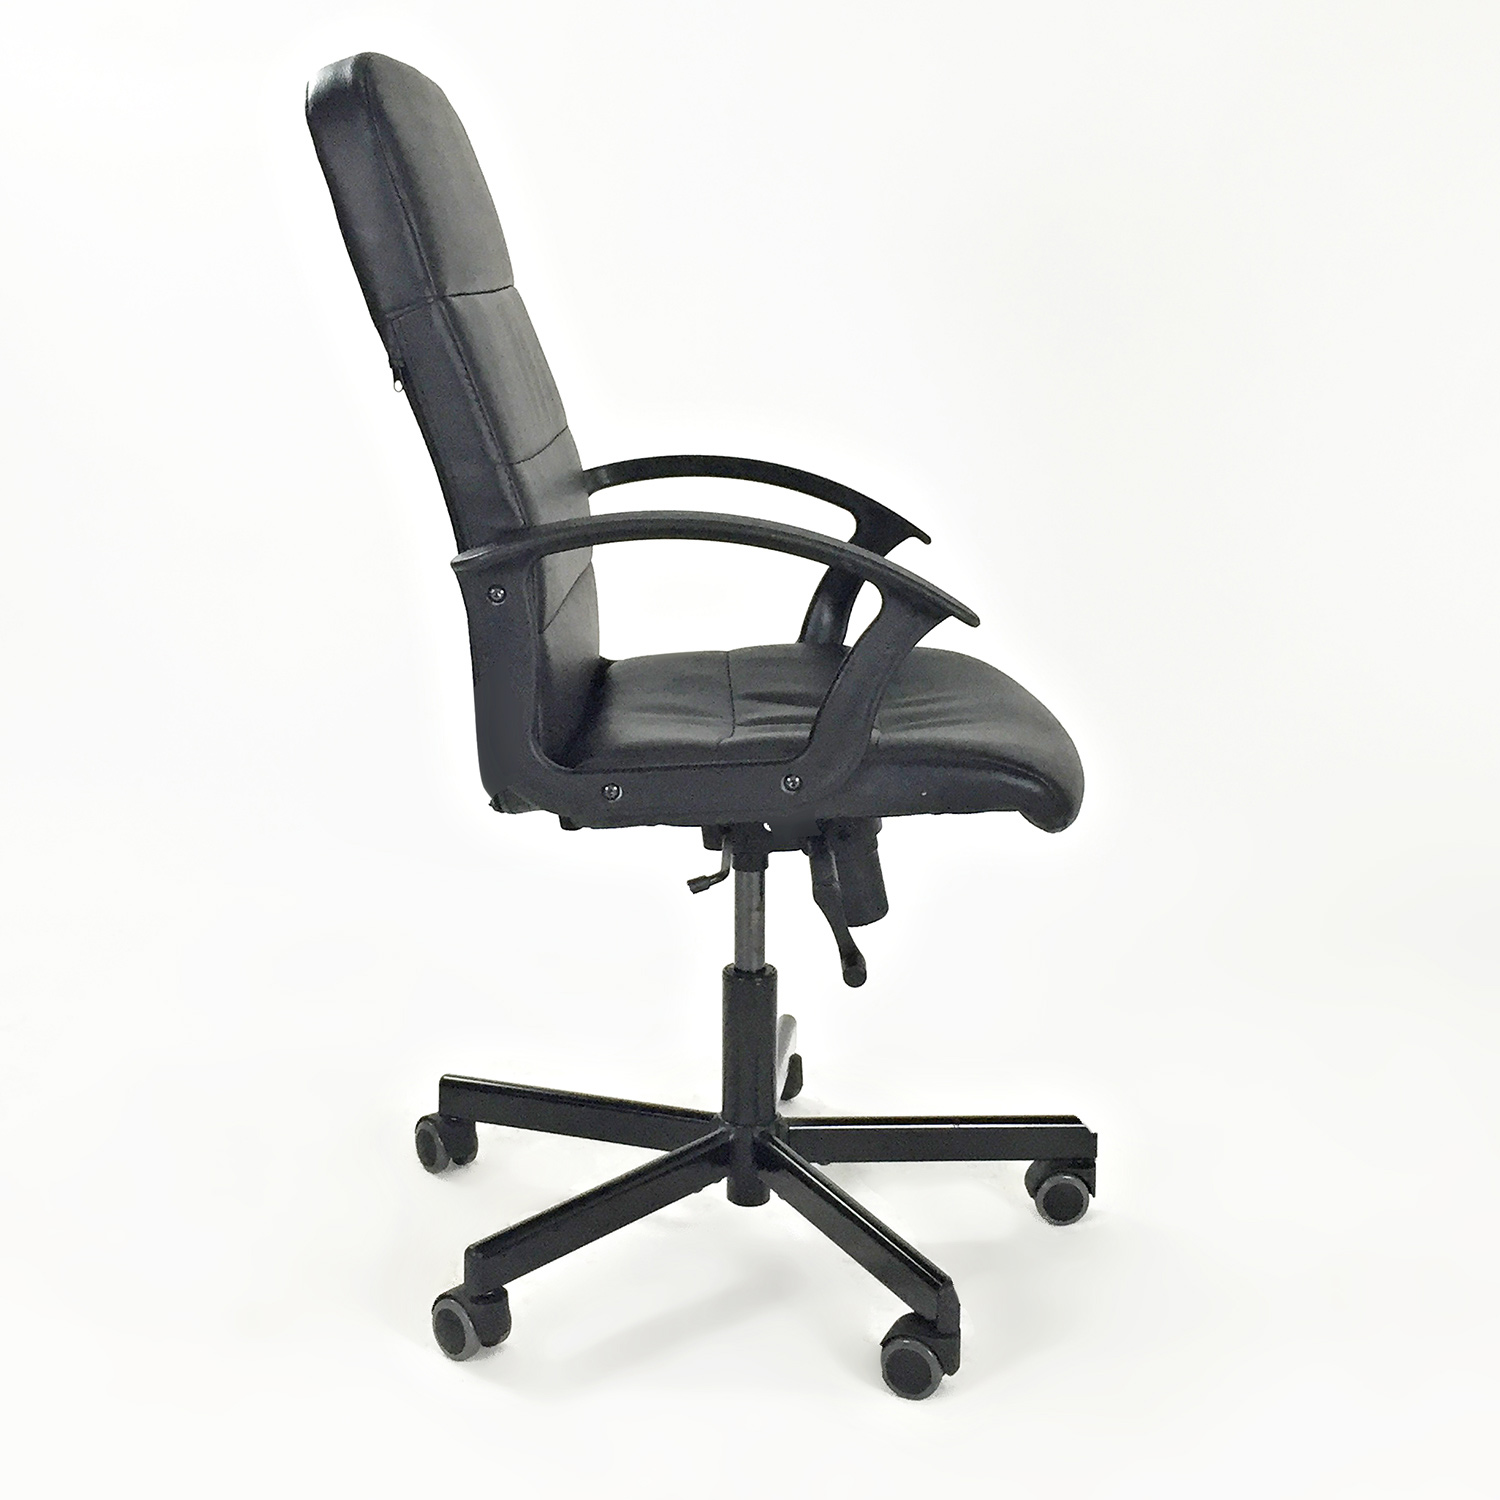 Black Office Chairs 58 Off Ikea Black Office Chair Chairs